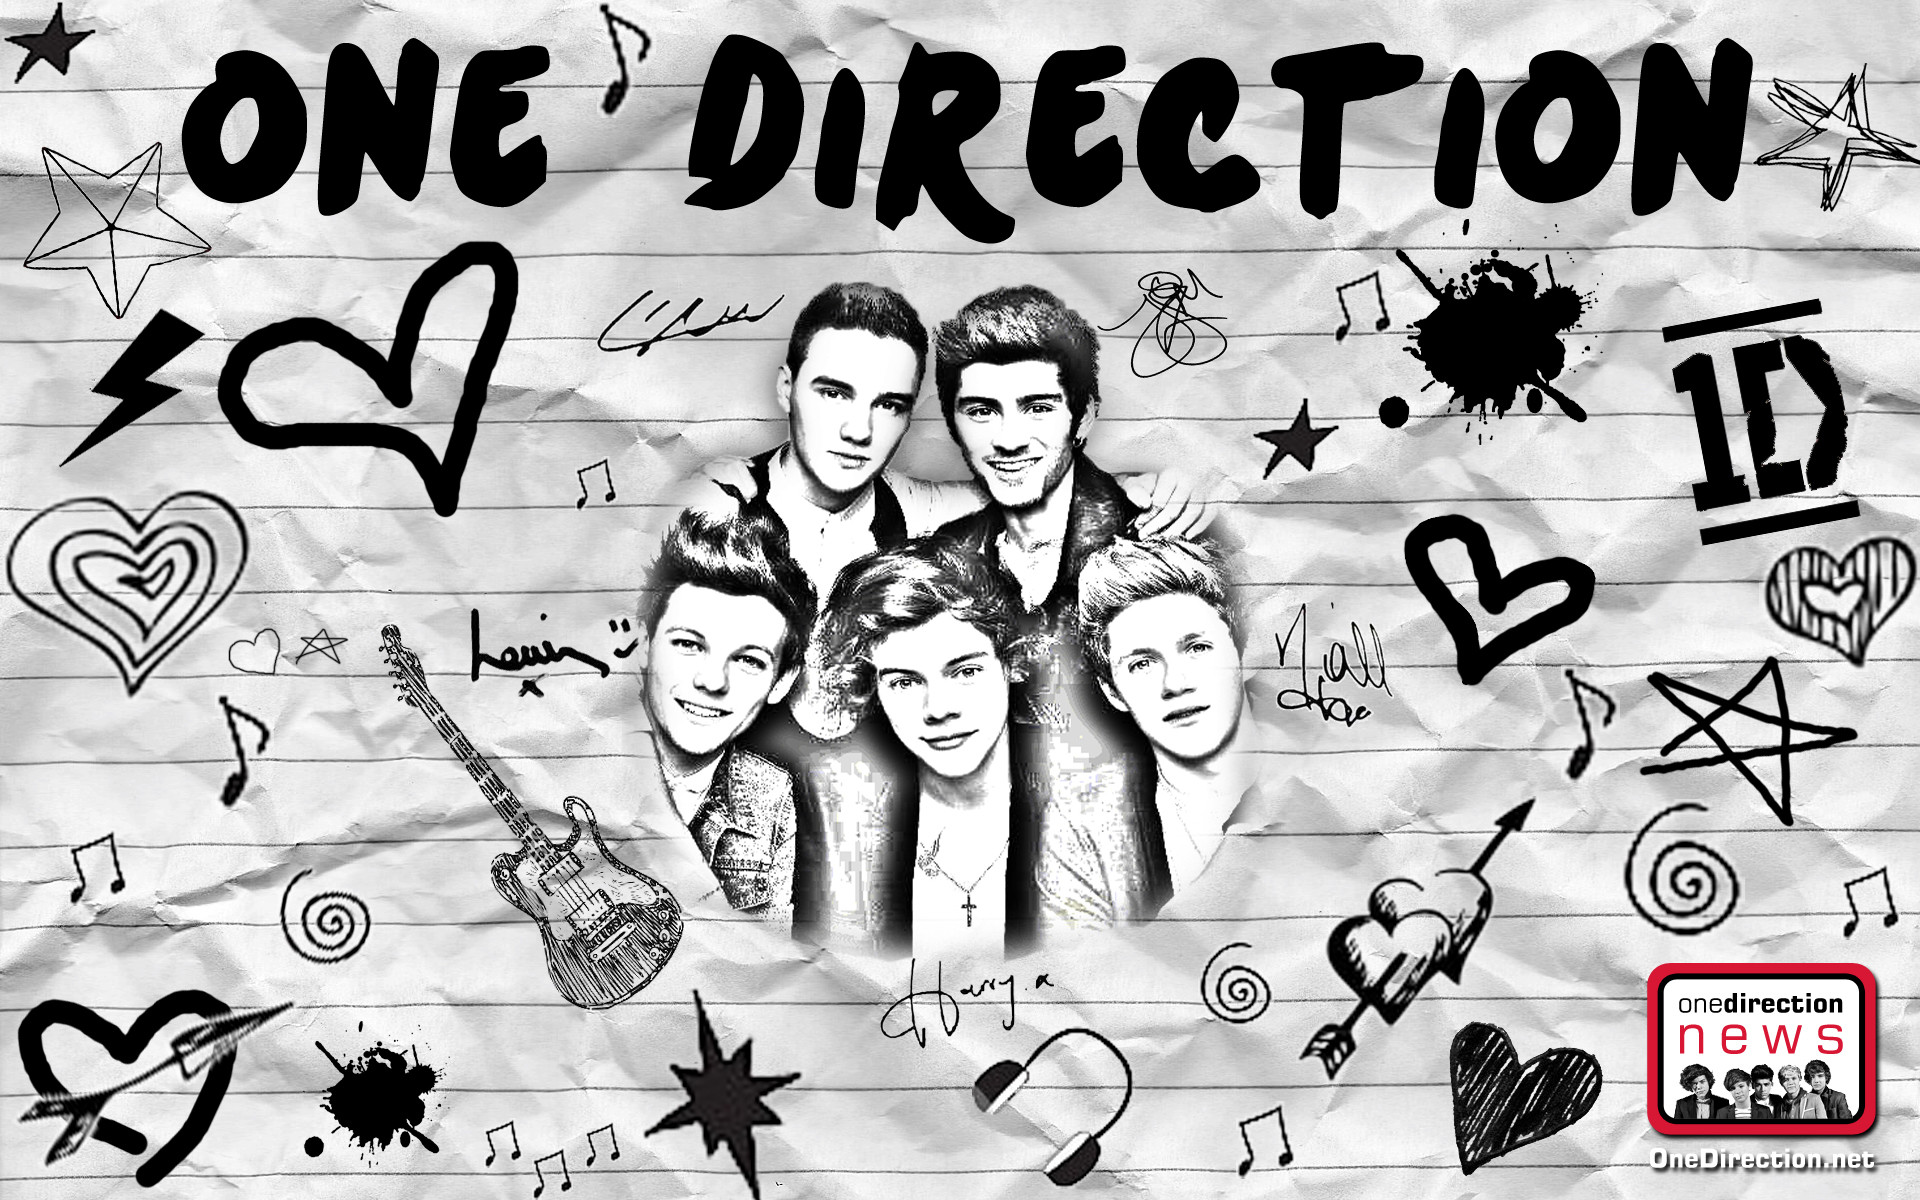 One Direction 2014 Wallpaper For Laptop